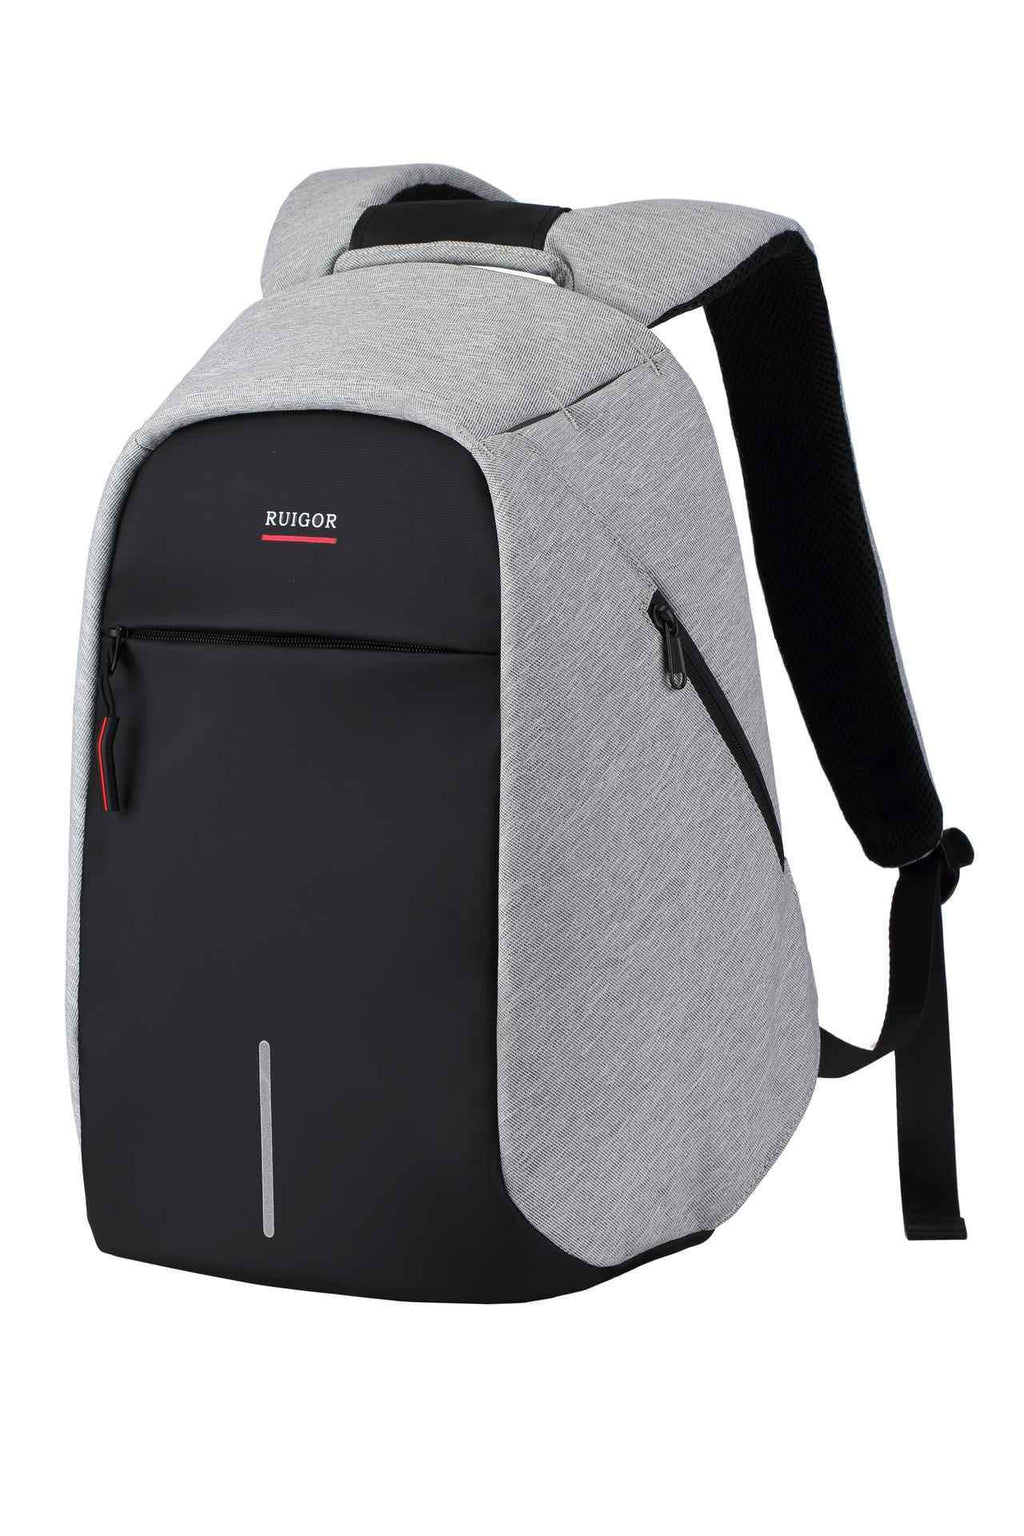 RUIGOR LINK 40 Laptop Backpack Black-Grey-Swissruigor-Mercantile Americana